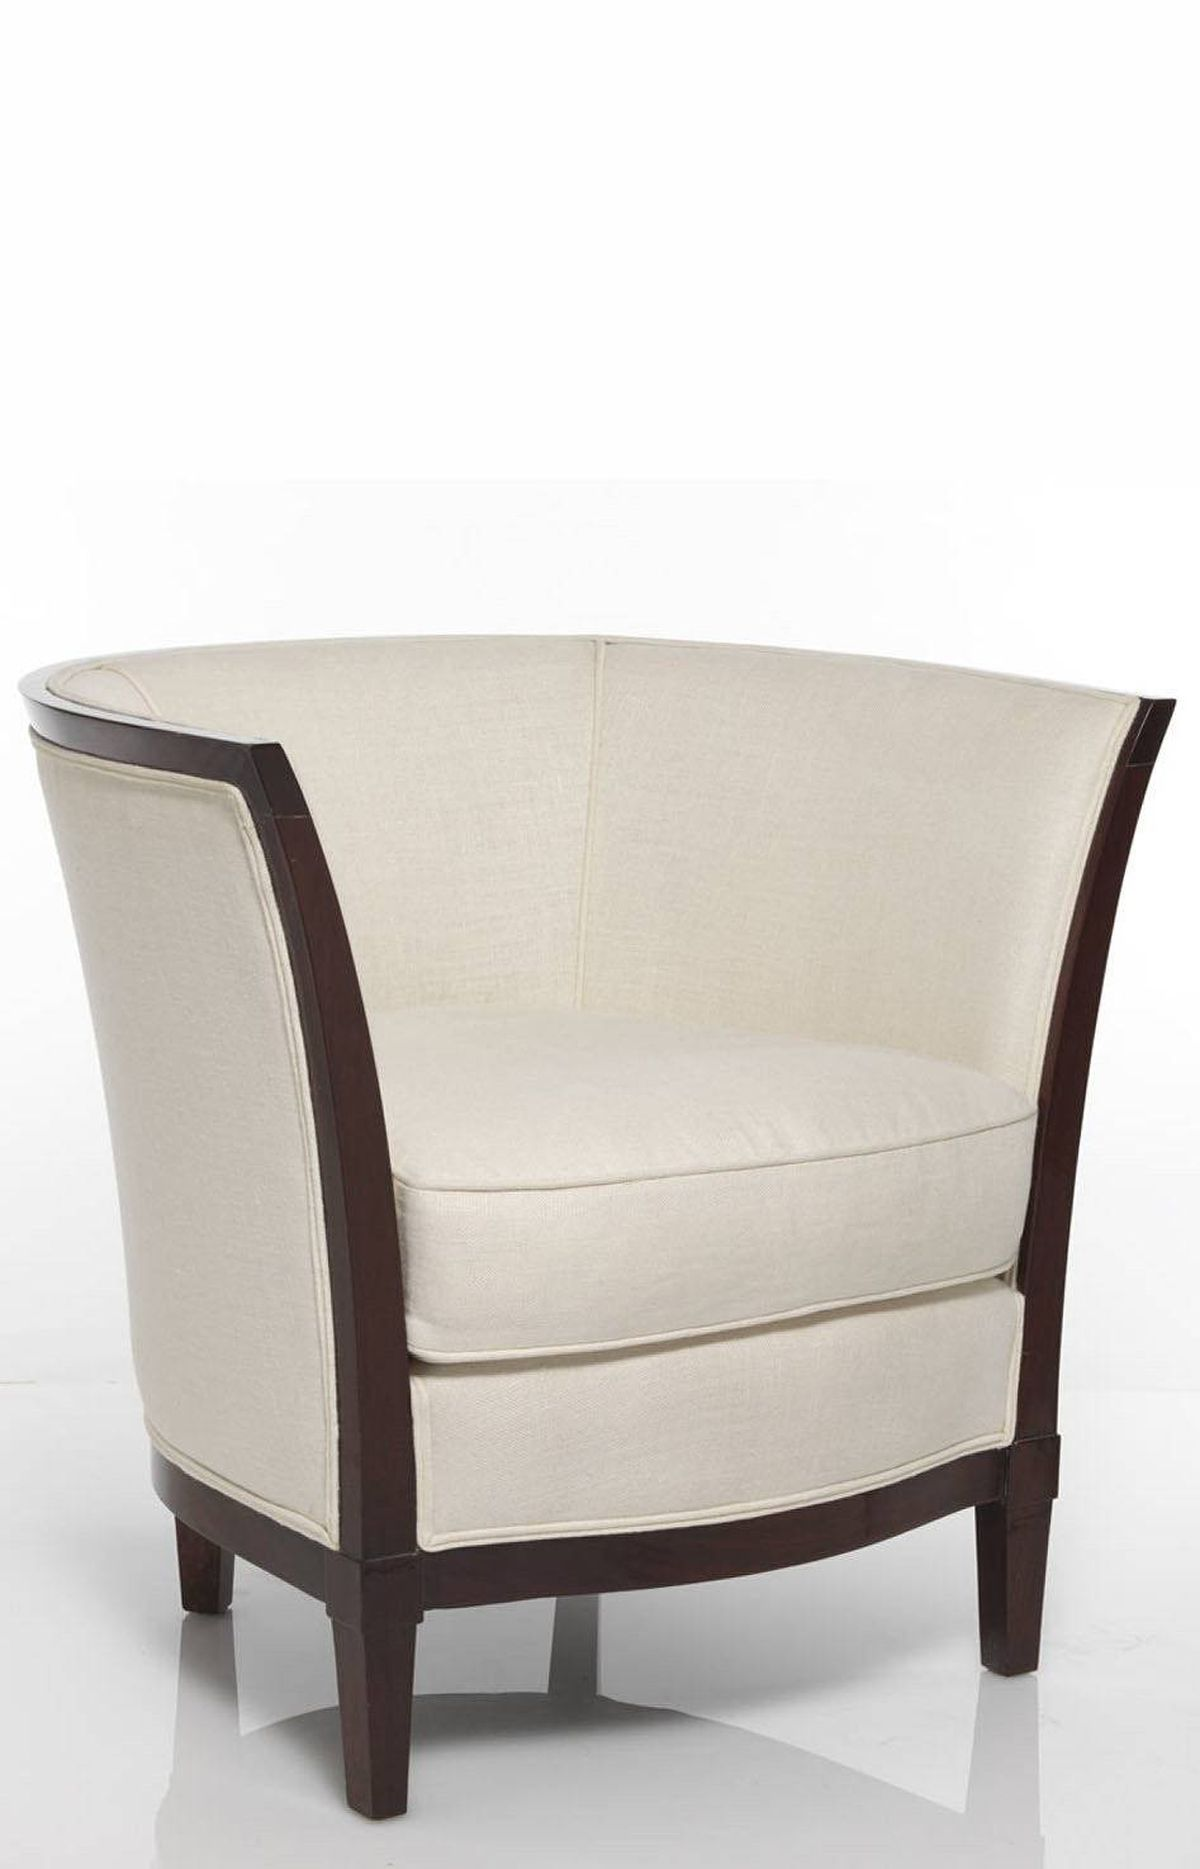 TREND: JAZZ-AGE Art-deco armchair upholstered in white linen with mahogany veneer frame, $3,900 at Trianon (www.trianon-online.com).